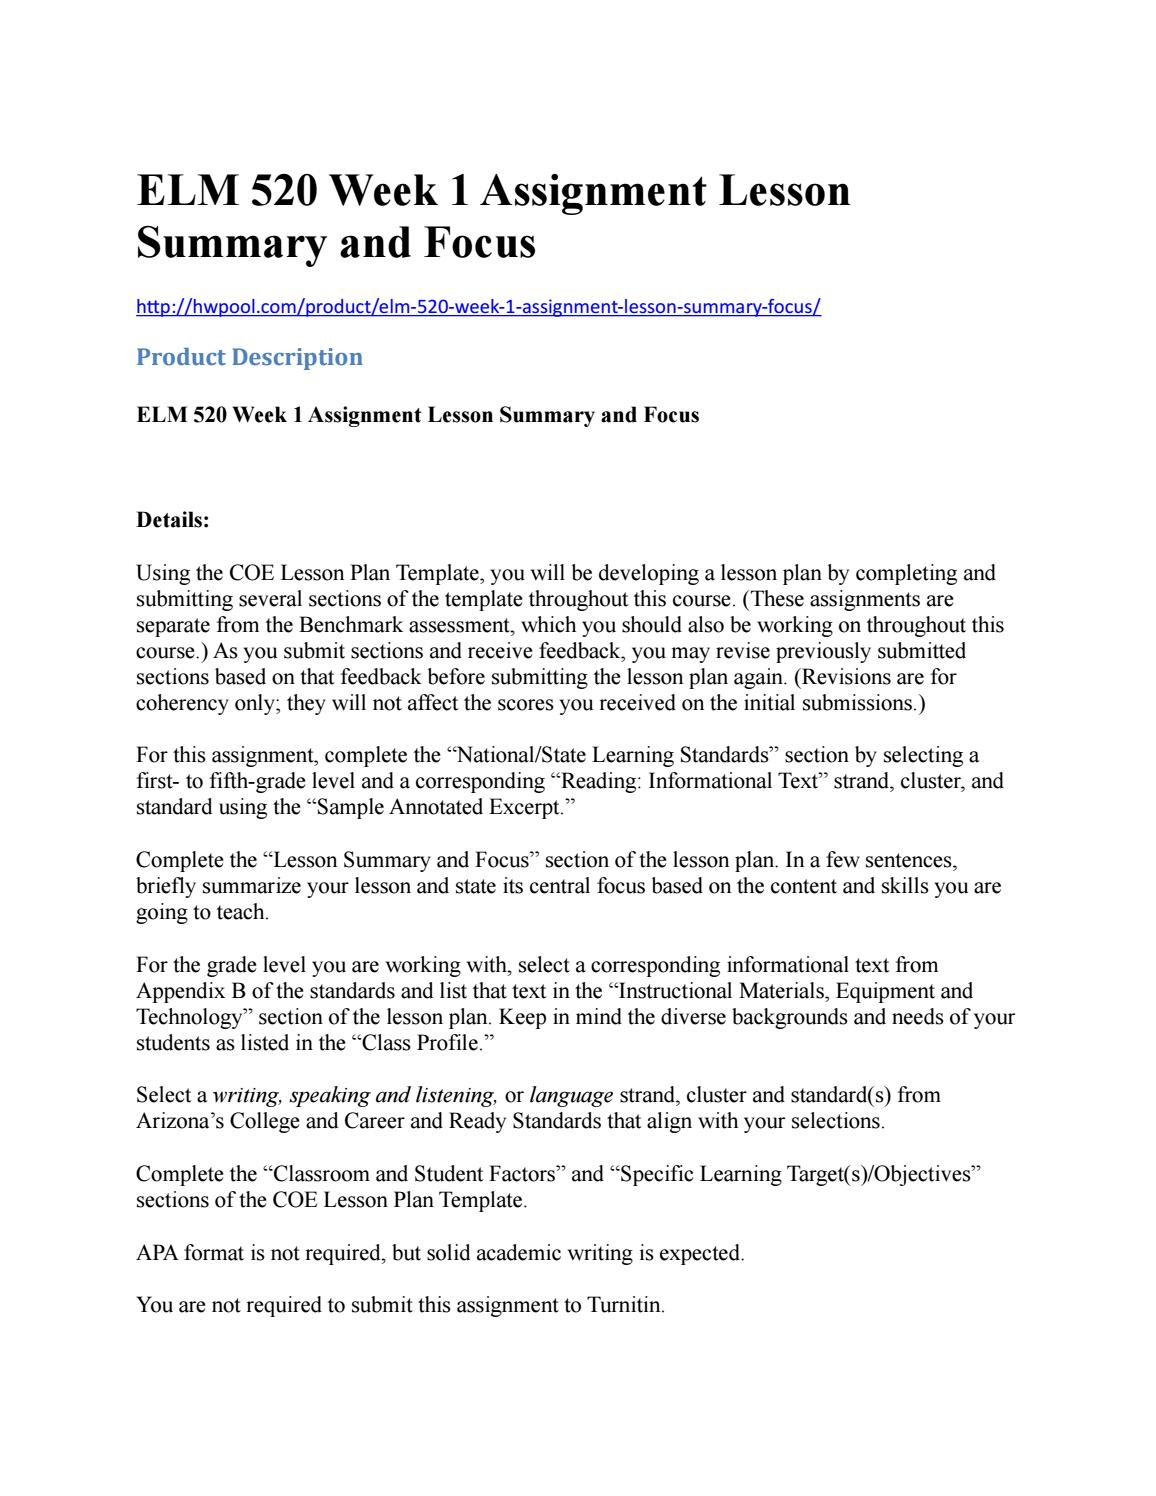 Elm Week Assignment Lesson Summary And Focus By AnitaHarding - Standards based lesson plan template